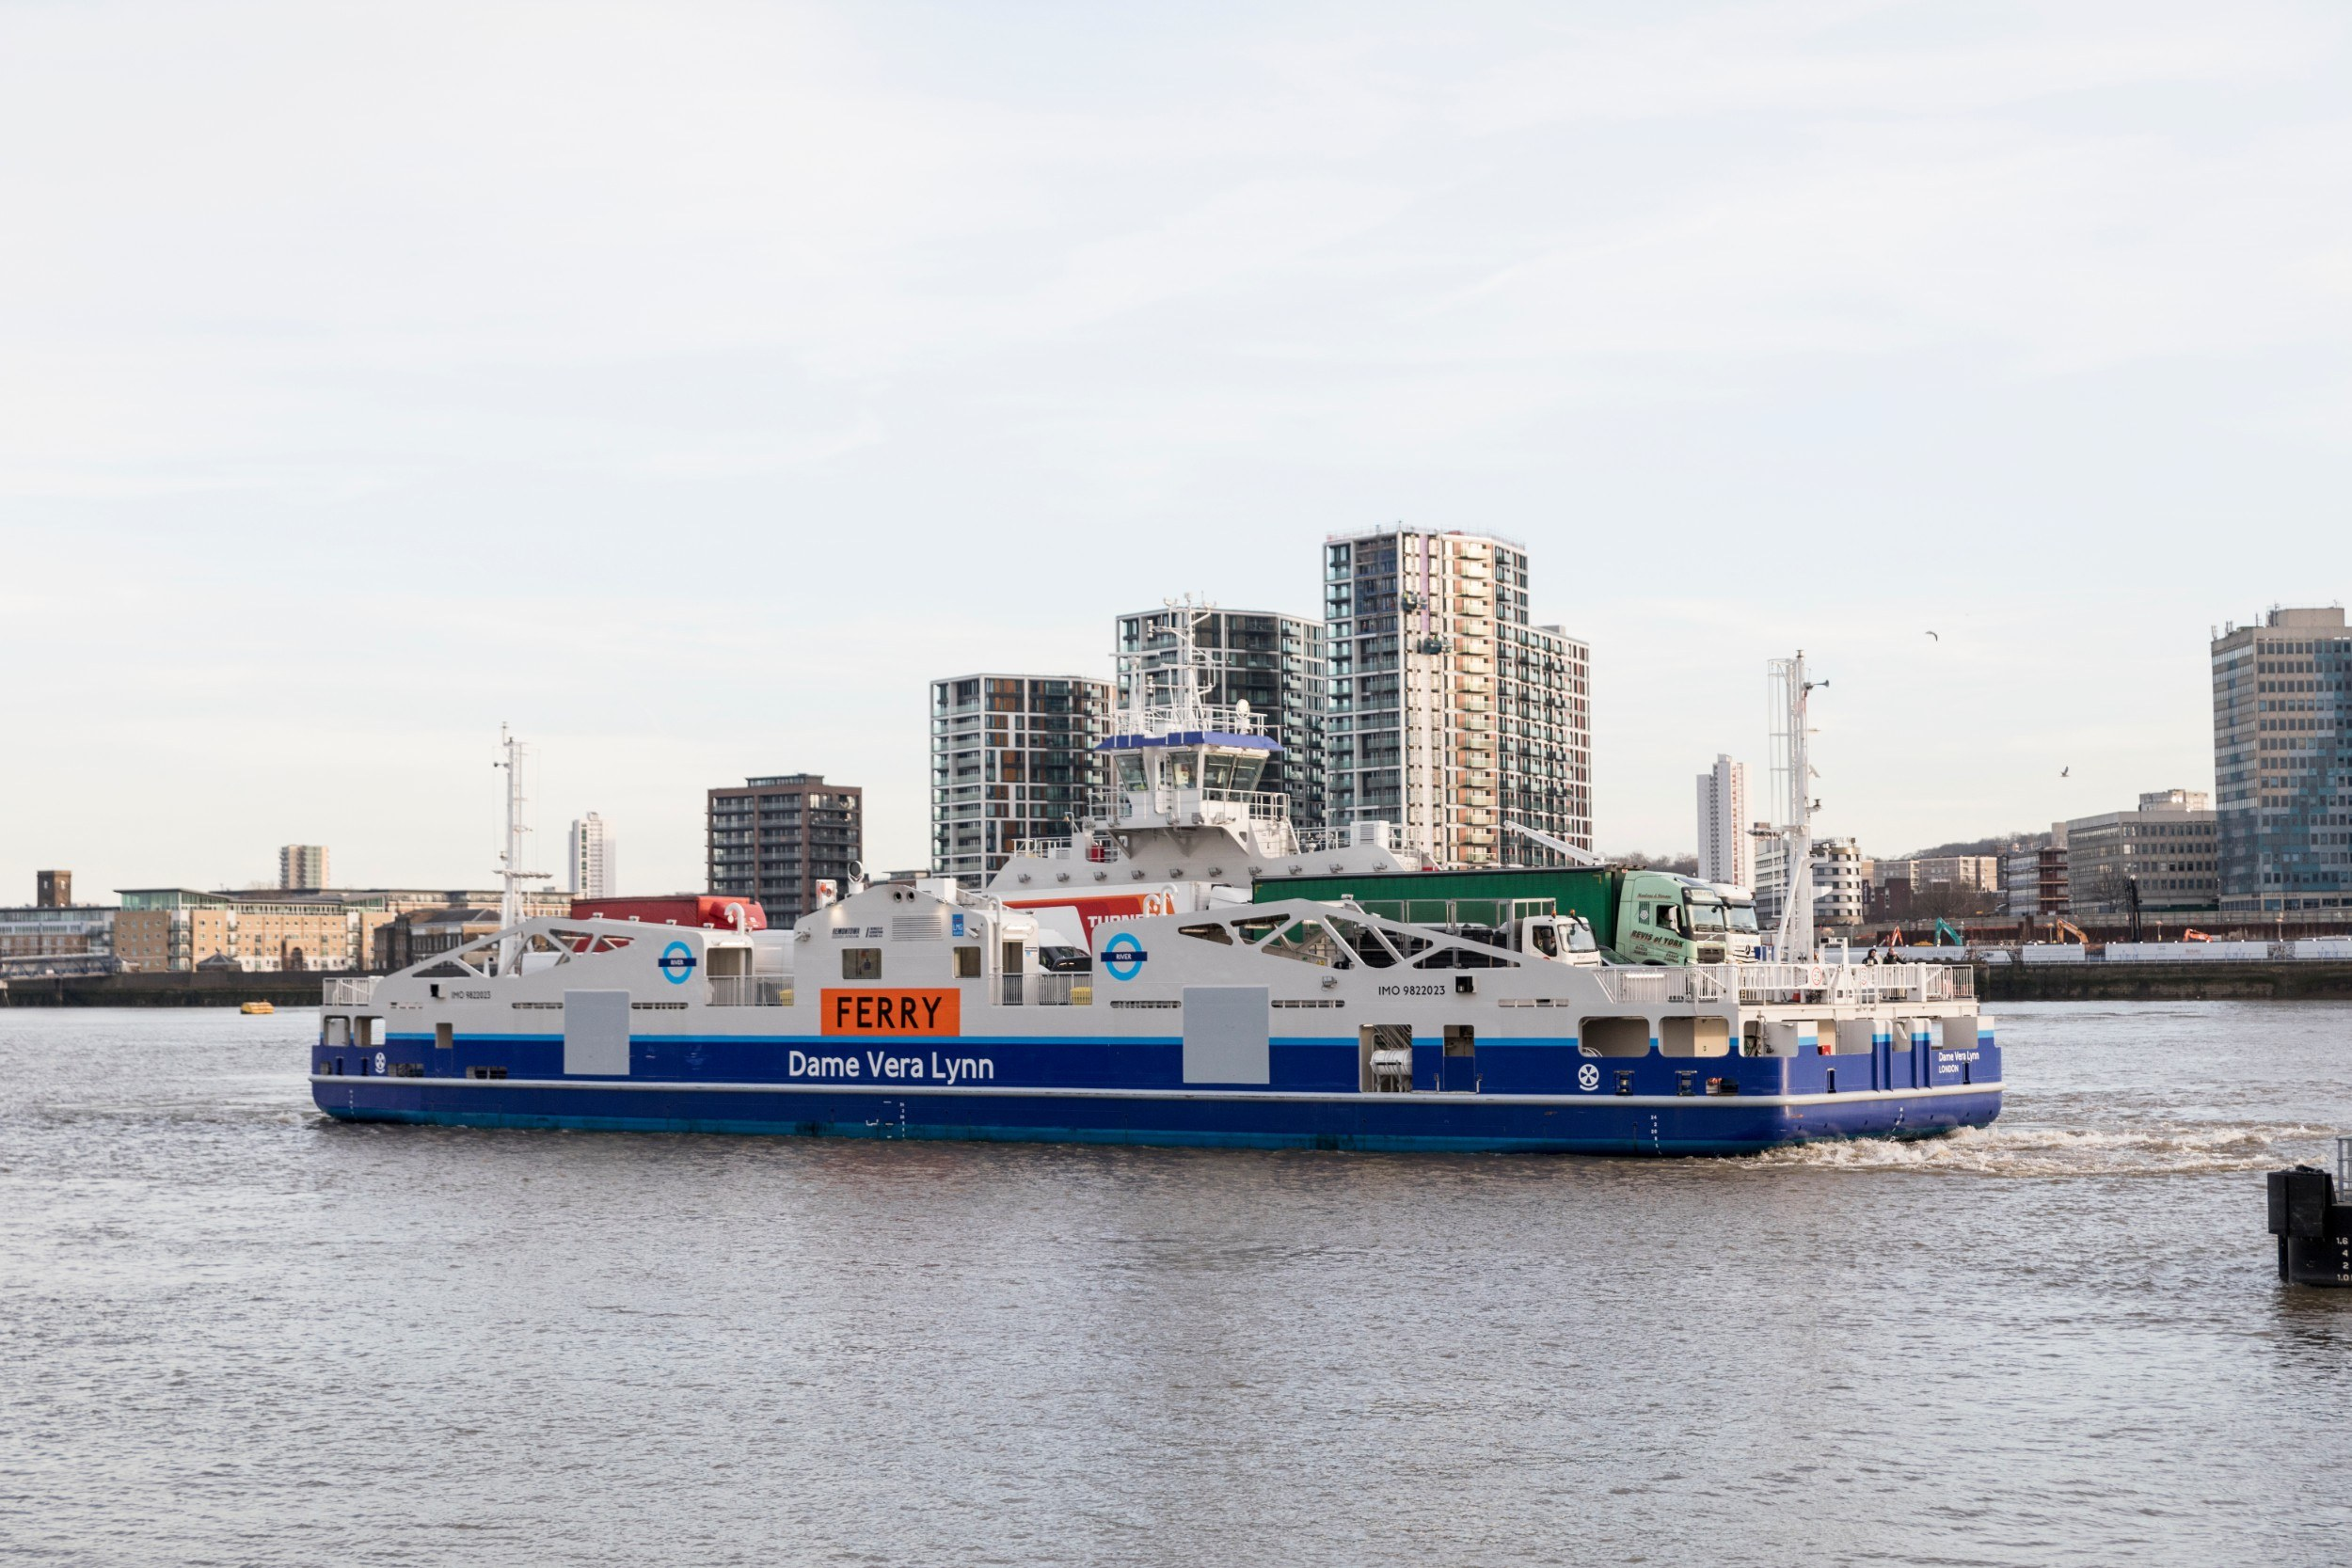 The new model of the Woolwich Ferry on the water